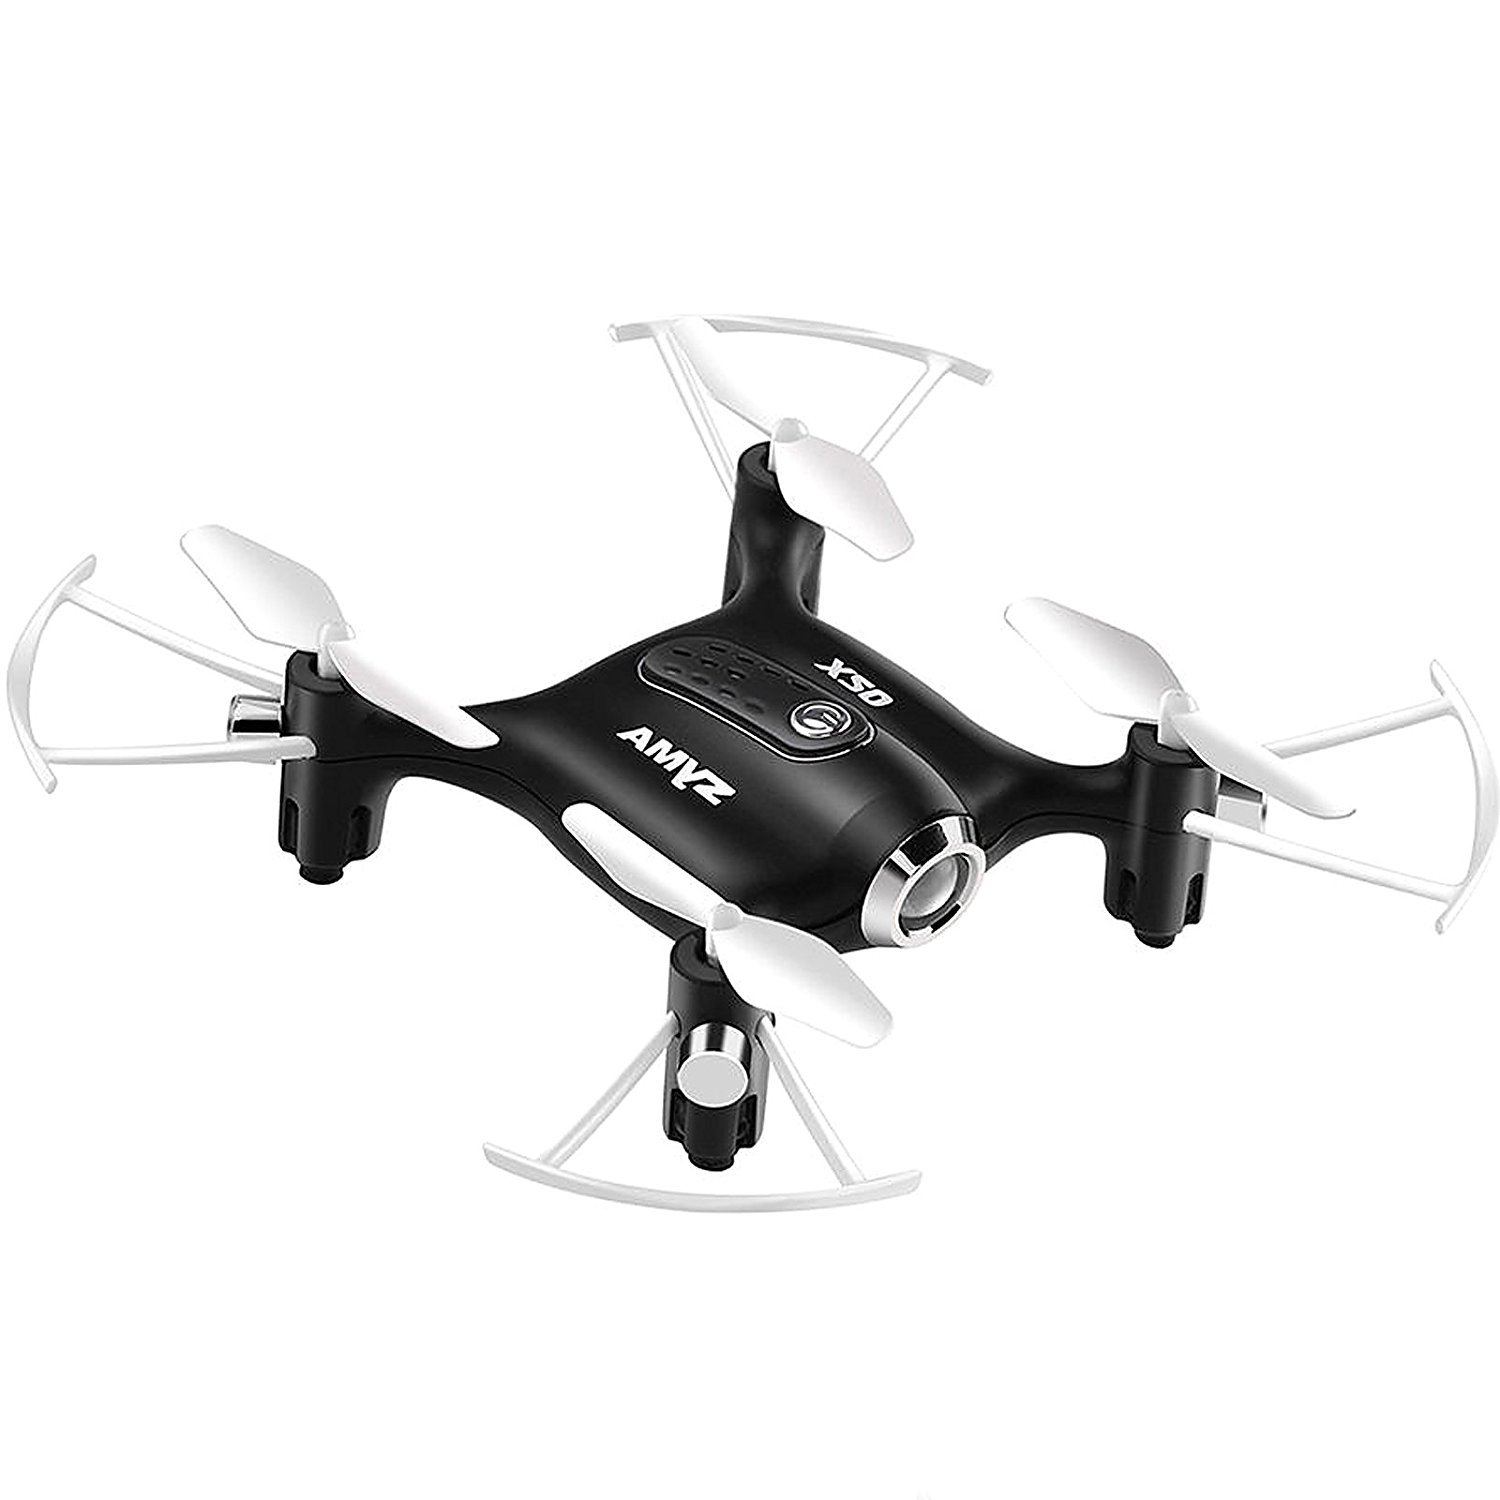 Cheerwing Syma X20 Pocket Drone 24ghz Remote Control Diy Make A Circuit Board Fly With This Cute Tiny Quadcopter Kit Mini Rc Altitude Hold And One Key Take Off Landing Black Toys Games